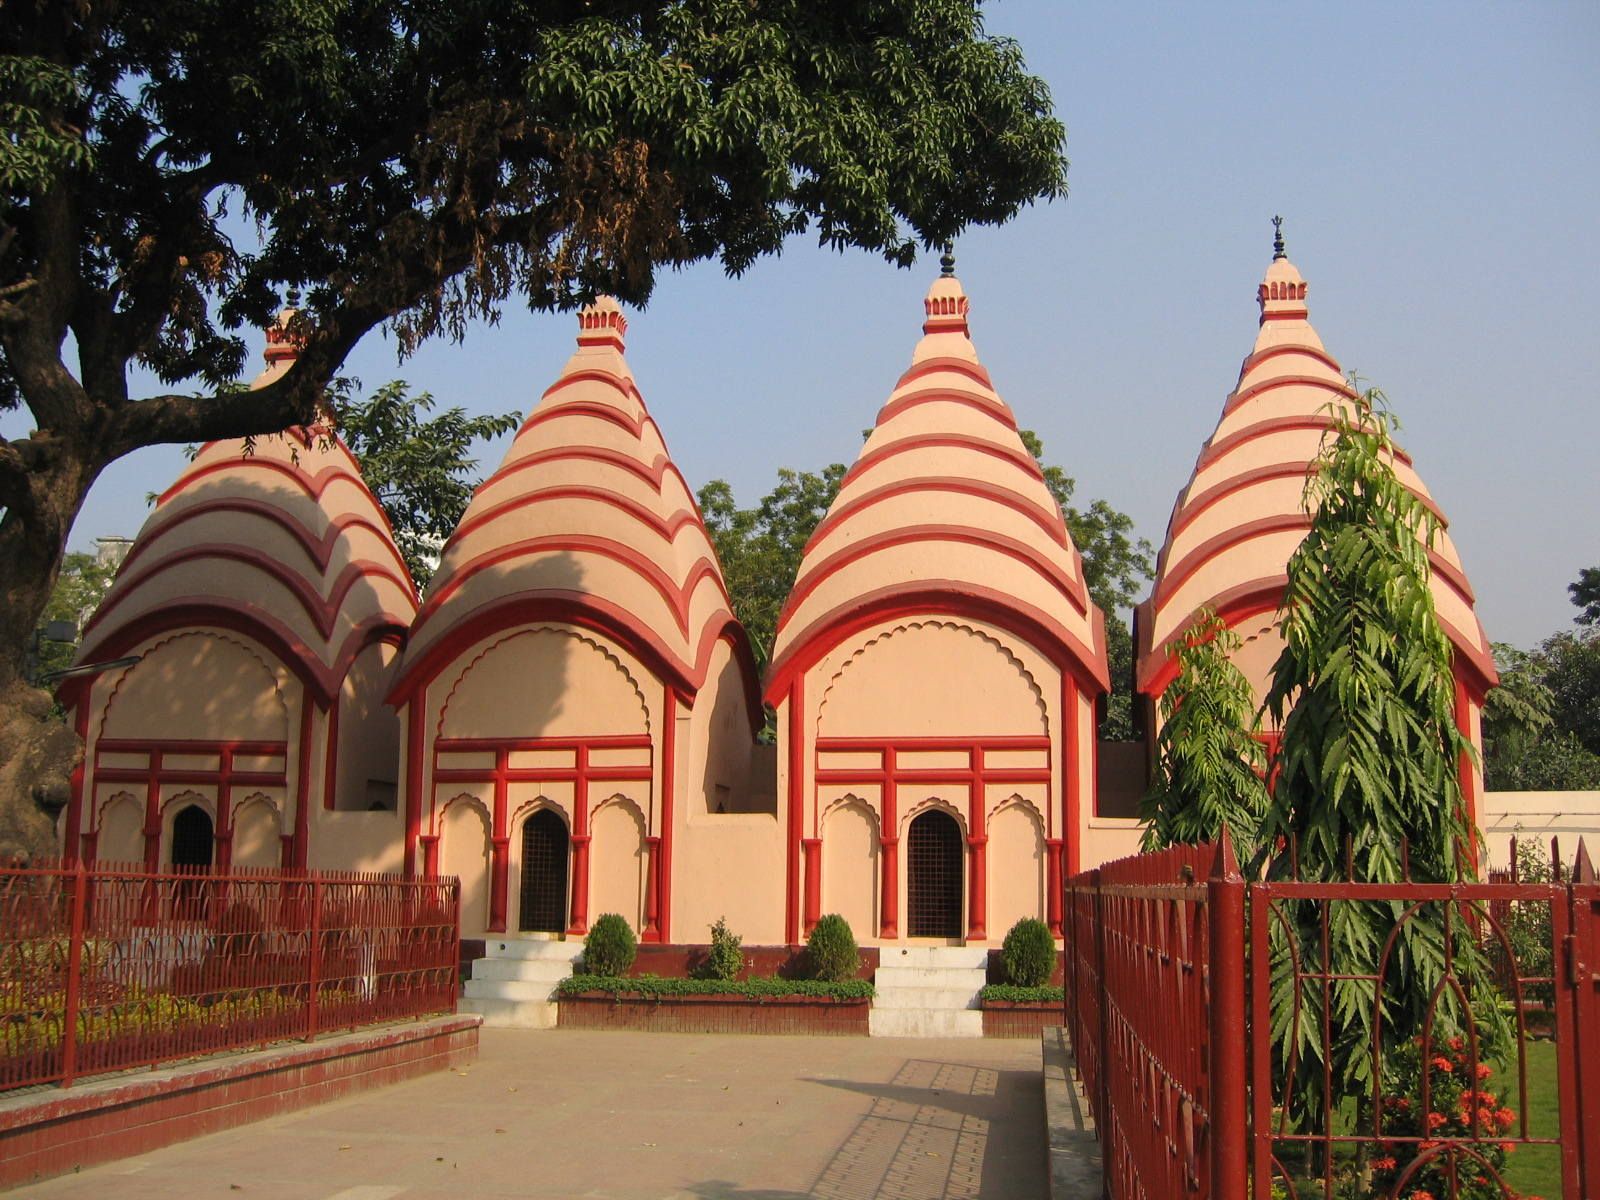 Shiva_temples_Dhakeshwari_Points of Interest in Dhaka